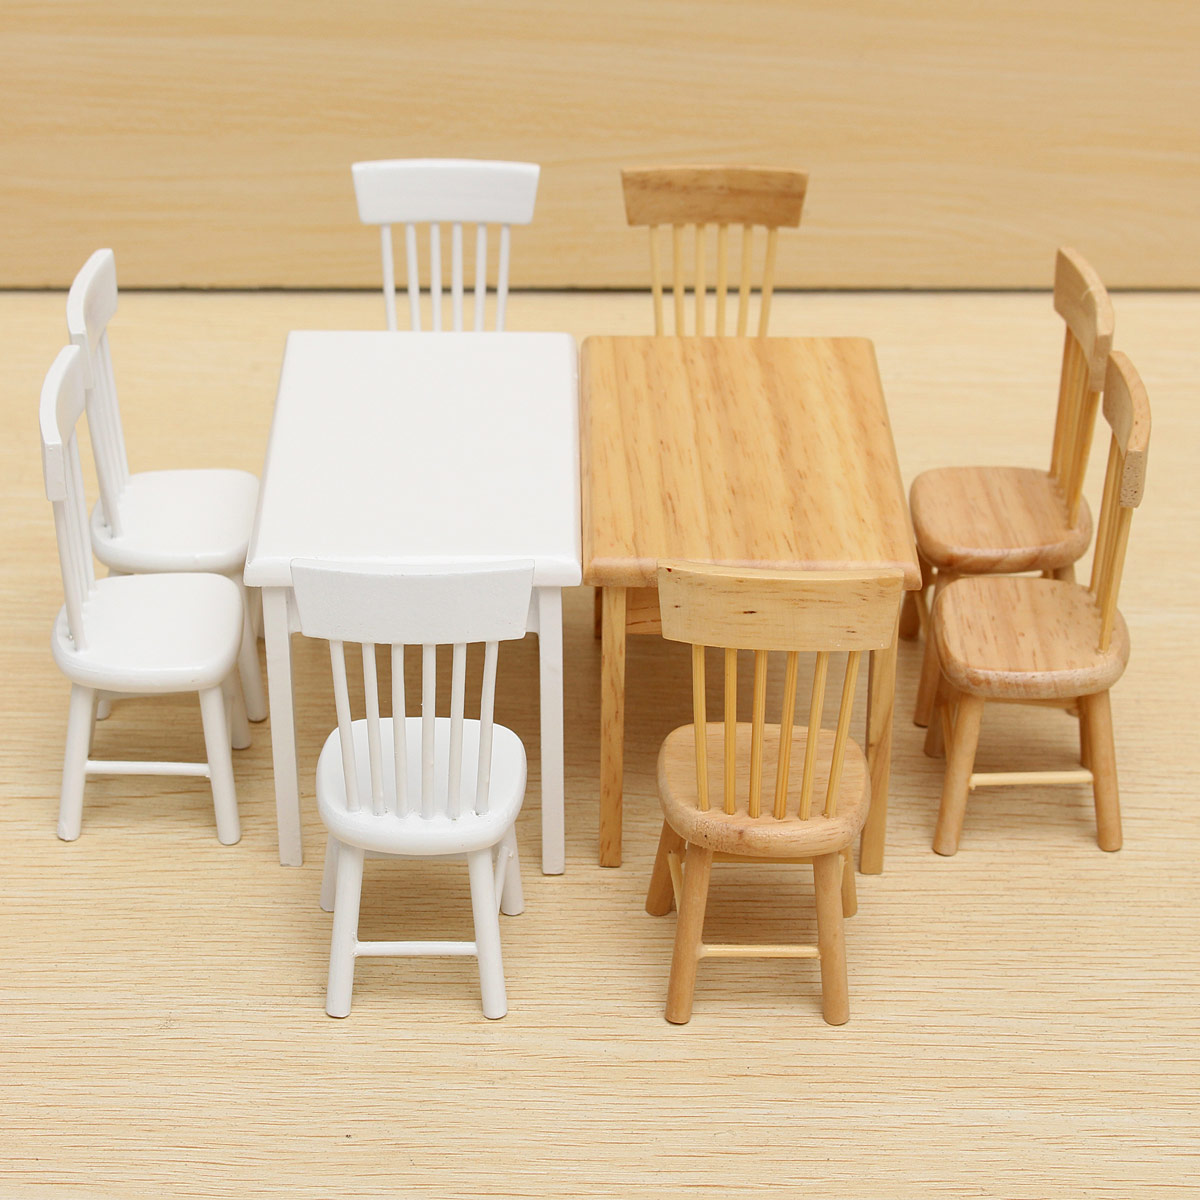 1 12 dollhouse miniature furniture wooden dining room table 4 chairs set gift ebay. Black Bedroom Furniture Sets. Home Design Ideas